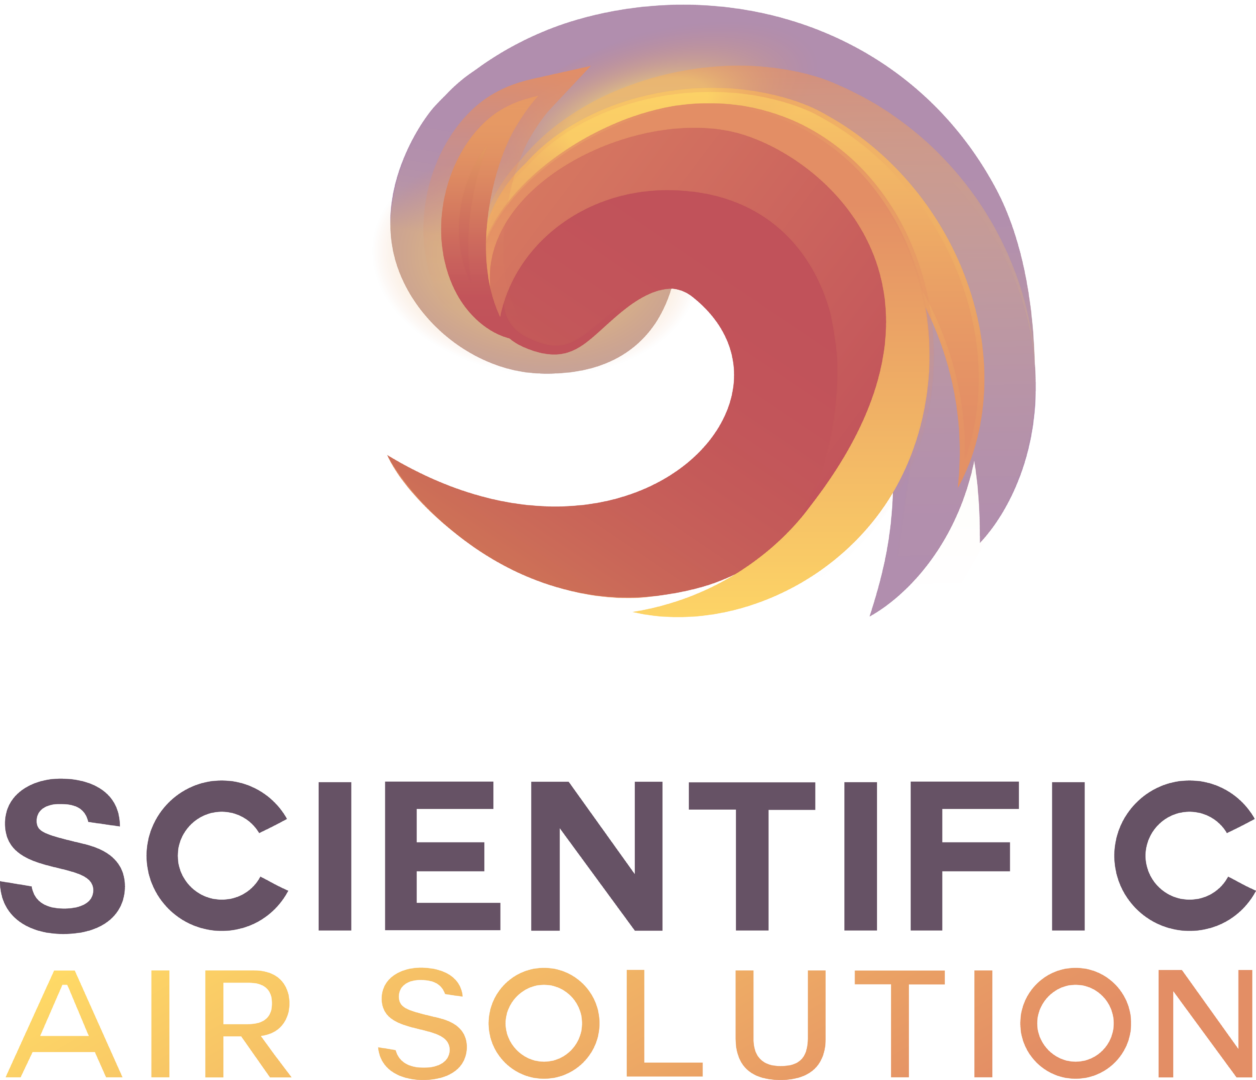 scientificair